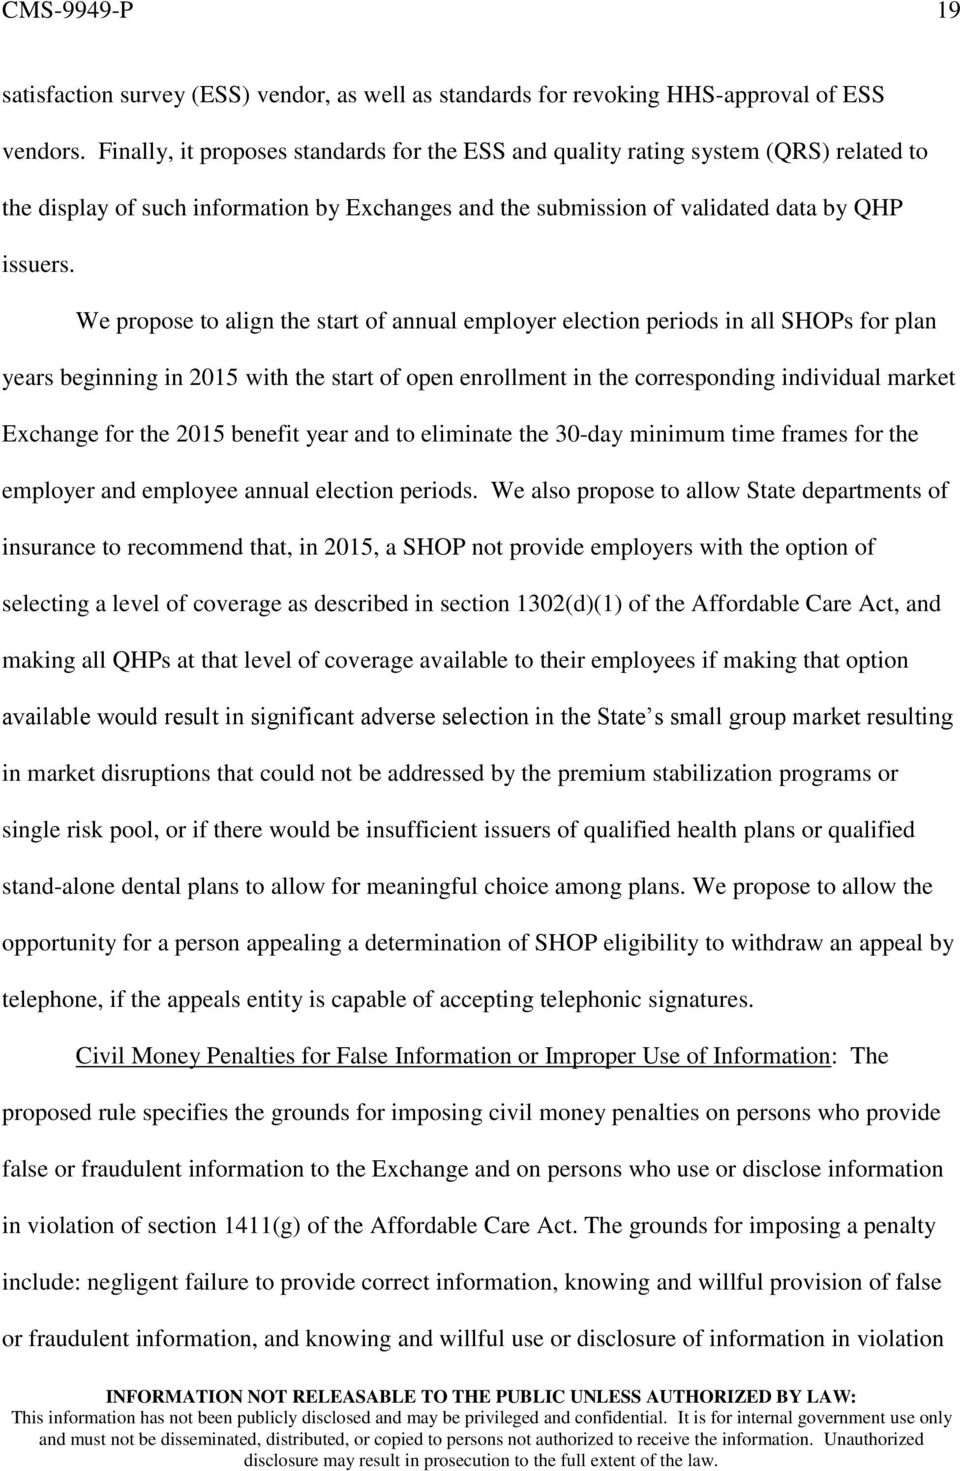 We propose to align the start of annual employer election periods in all SHOPs for plan years beginning in 2015 with the start of open enrollment in the corresponding individual market Exchange for